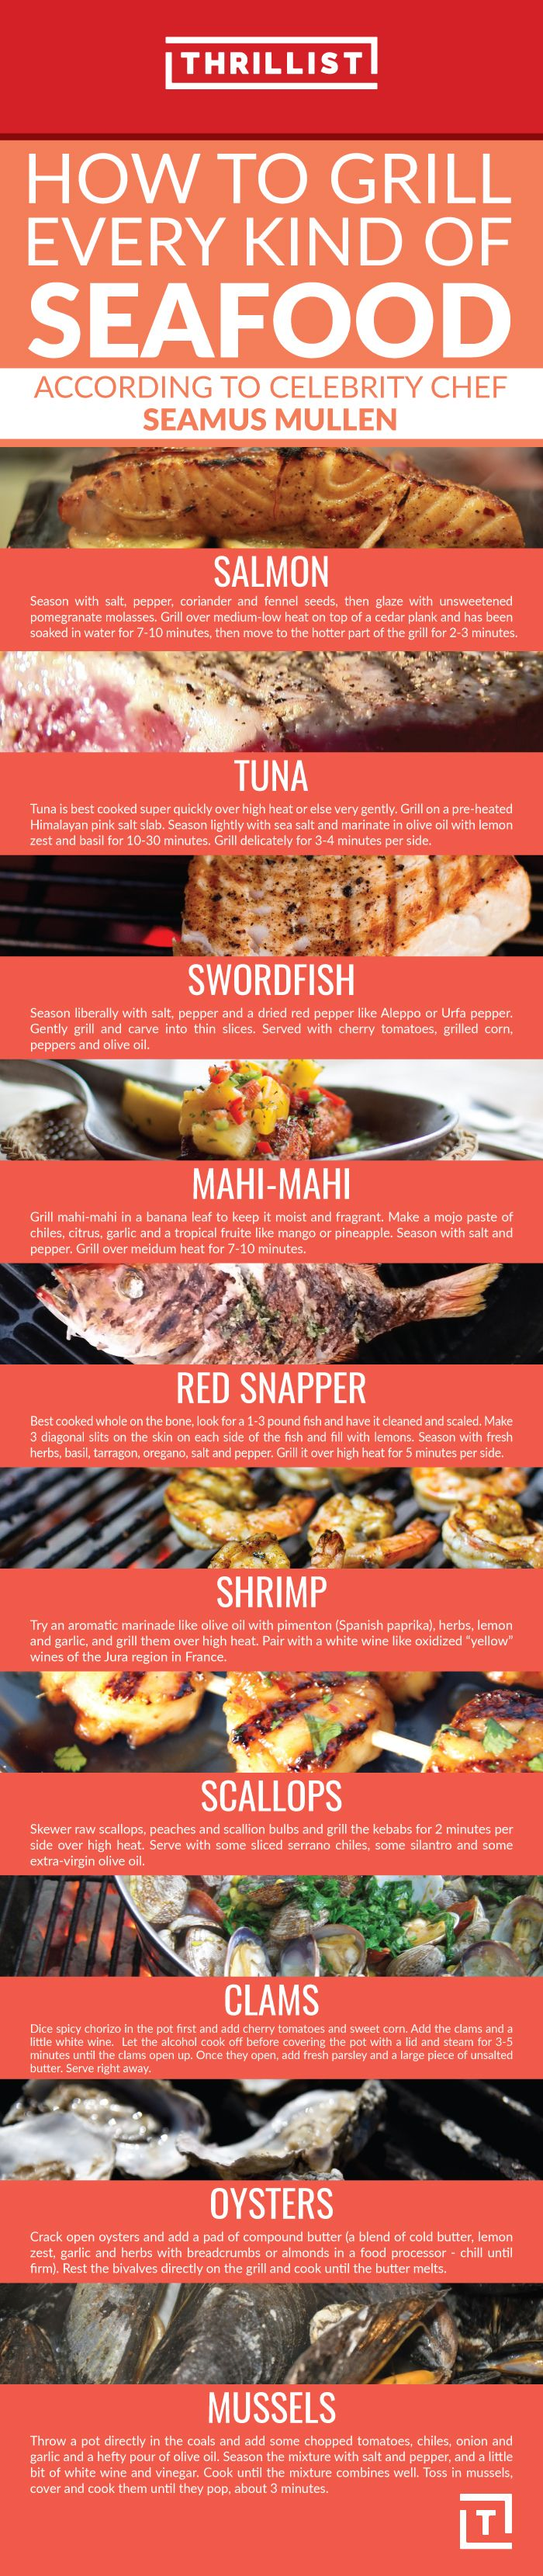 Here, Chef Seamus Mullen explains his favorite ways to grill 10 different types of seafood… and what to drink them with.